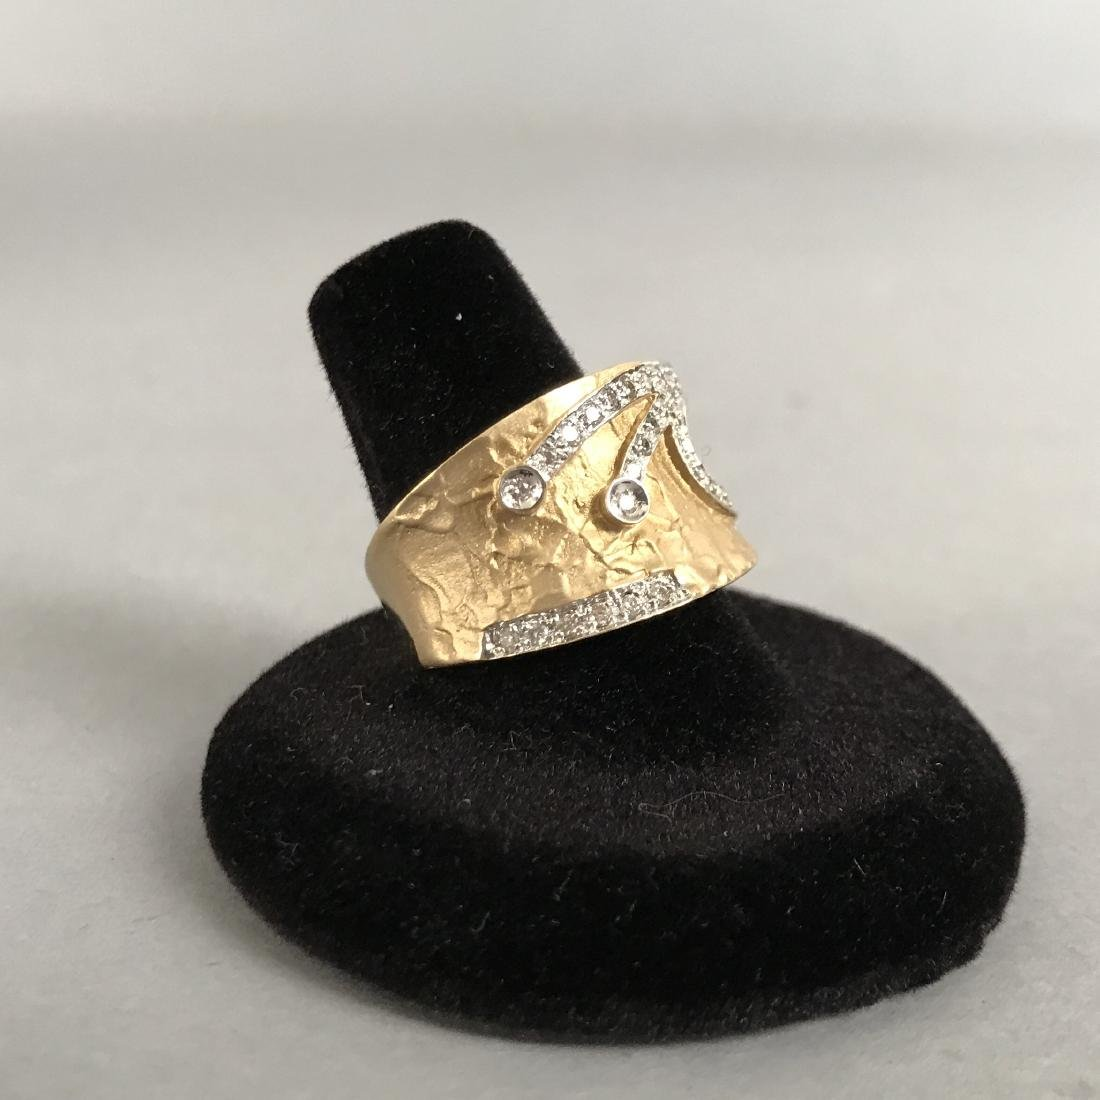 14K Gold Textured Ring with Diamond Design - 2